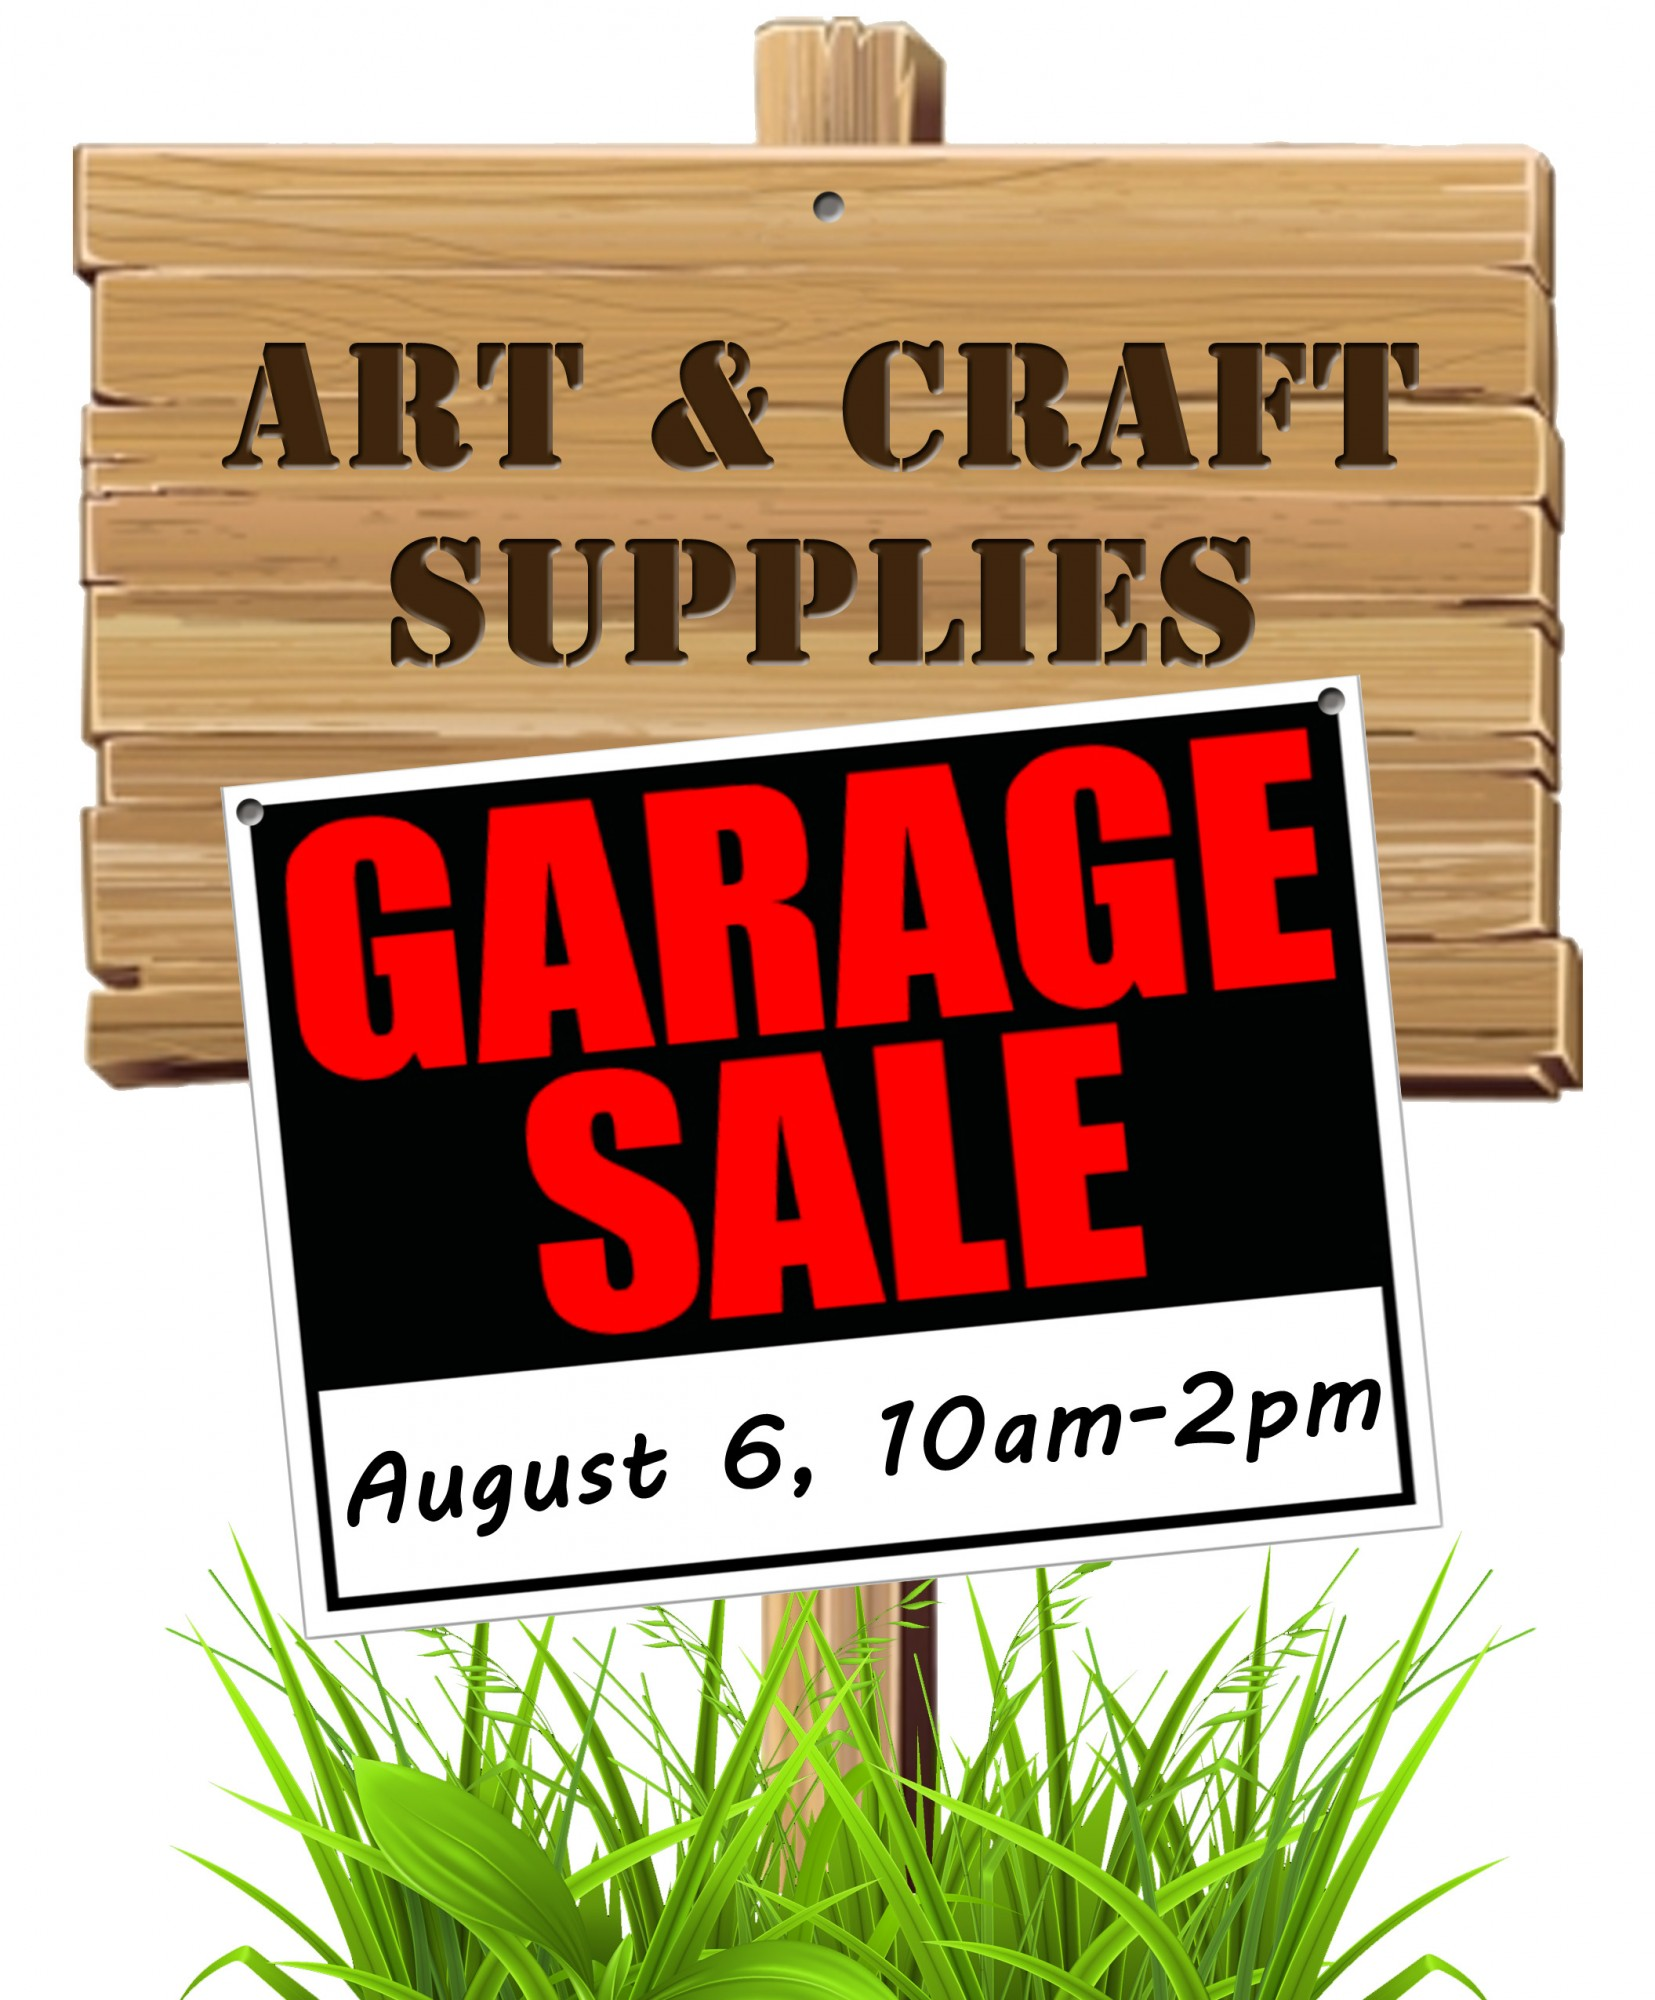 Art craft supplies garage sale aug 6 2016 muncie for Clearance craft supplies sale